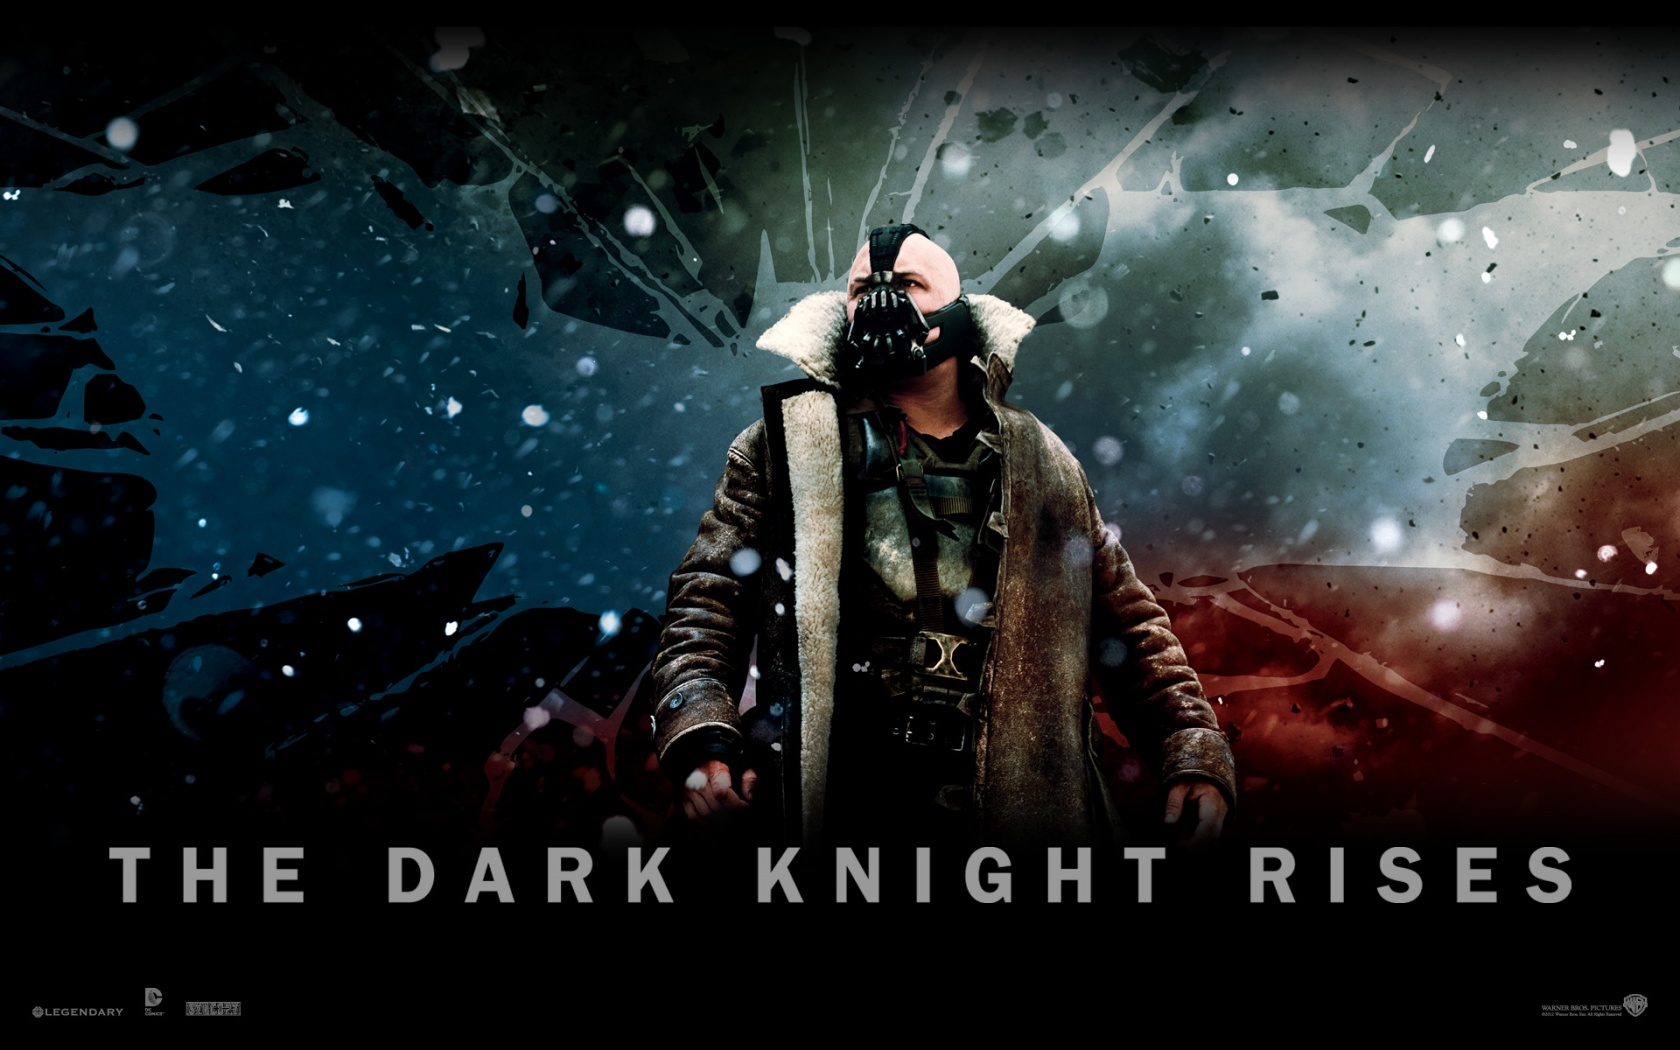 The dark knight rises official hd trailer